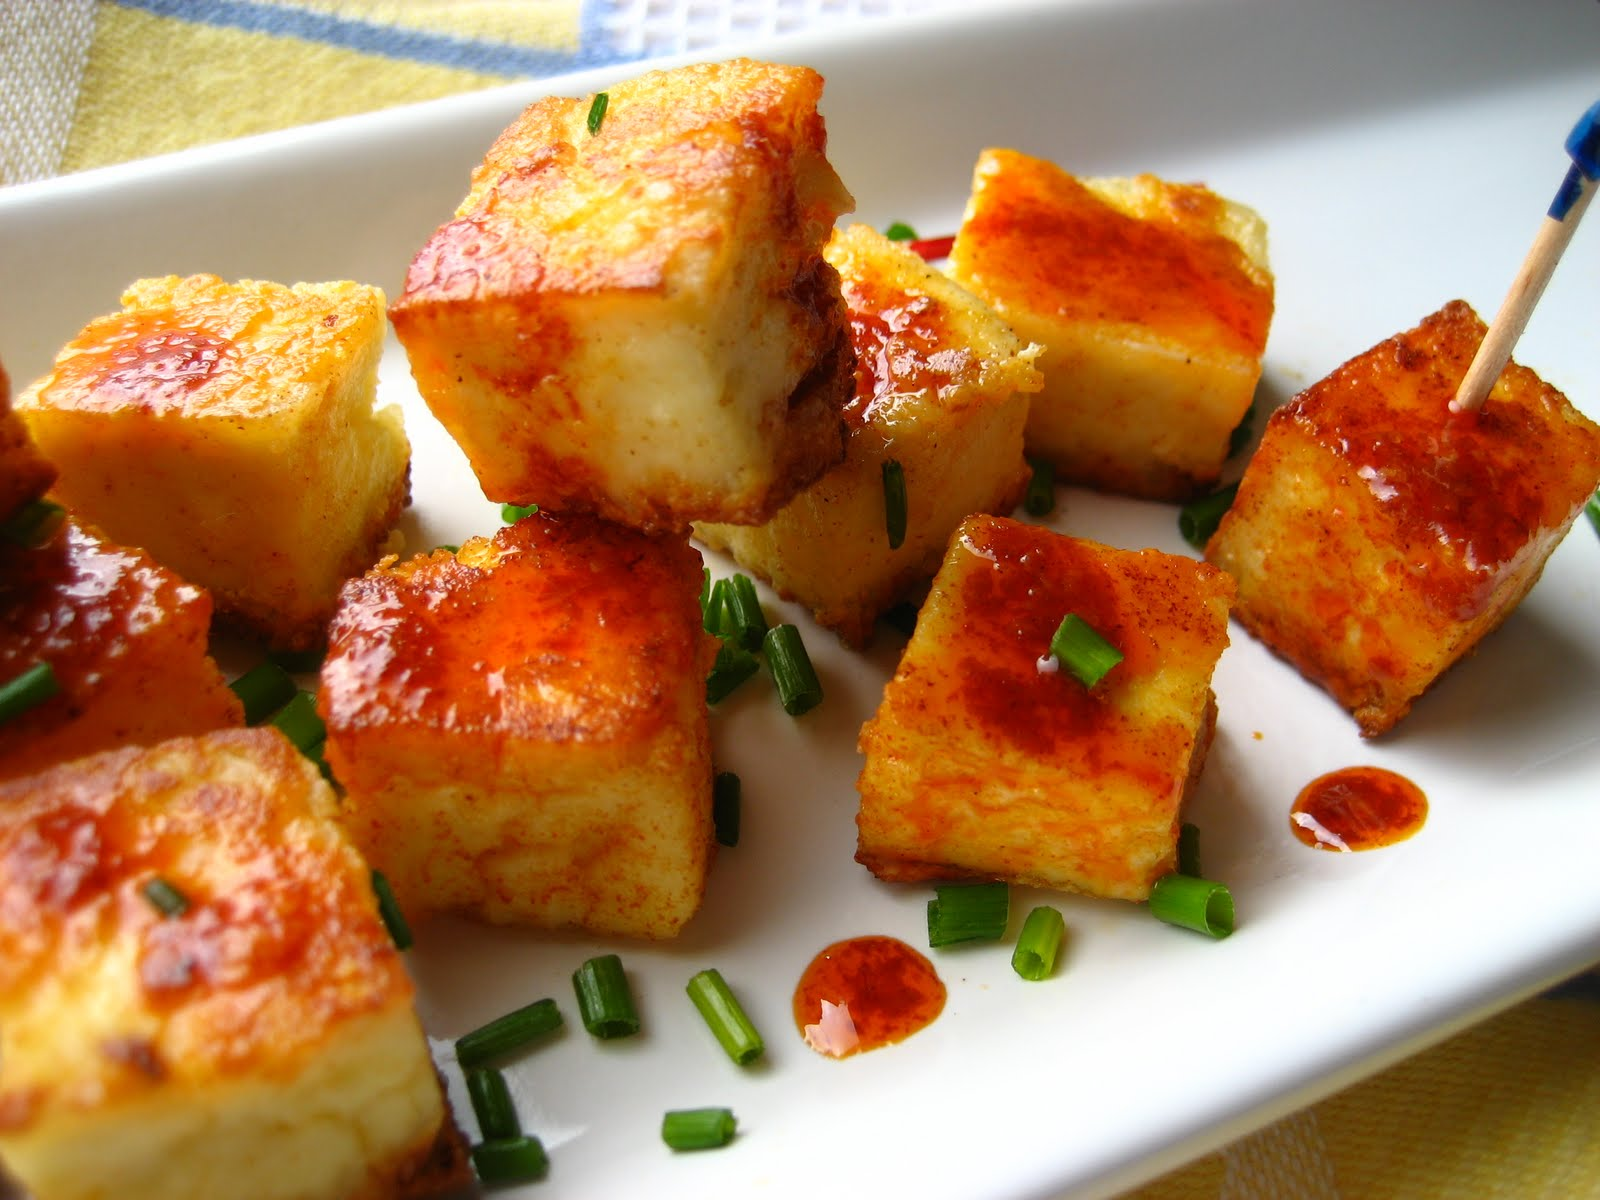 Home Cooking In Montana: Homemade Cheese....Paneer